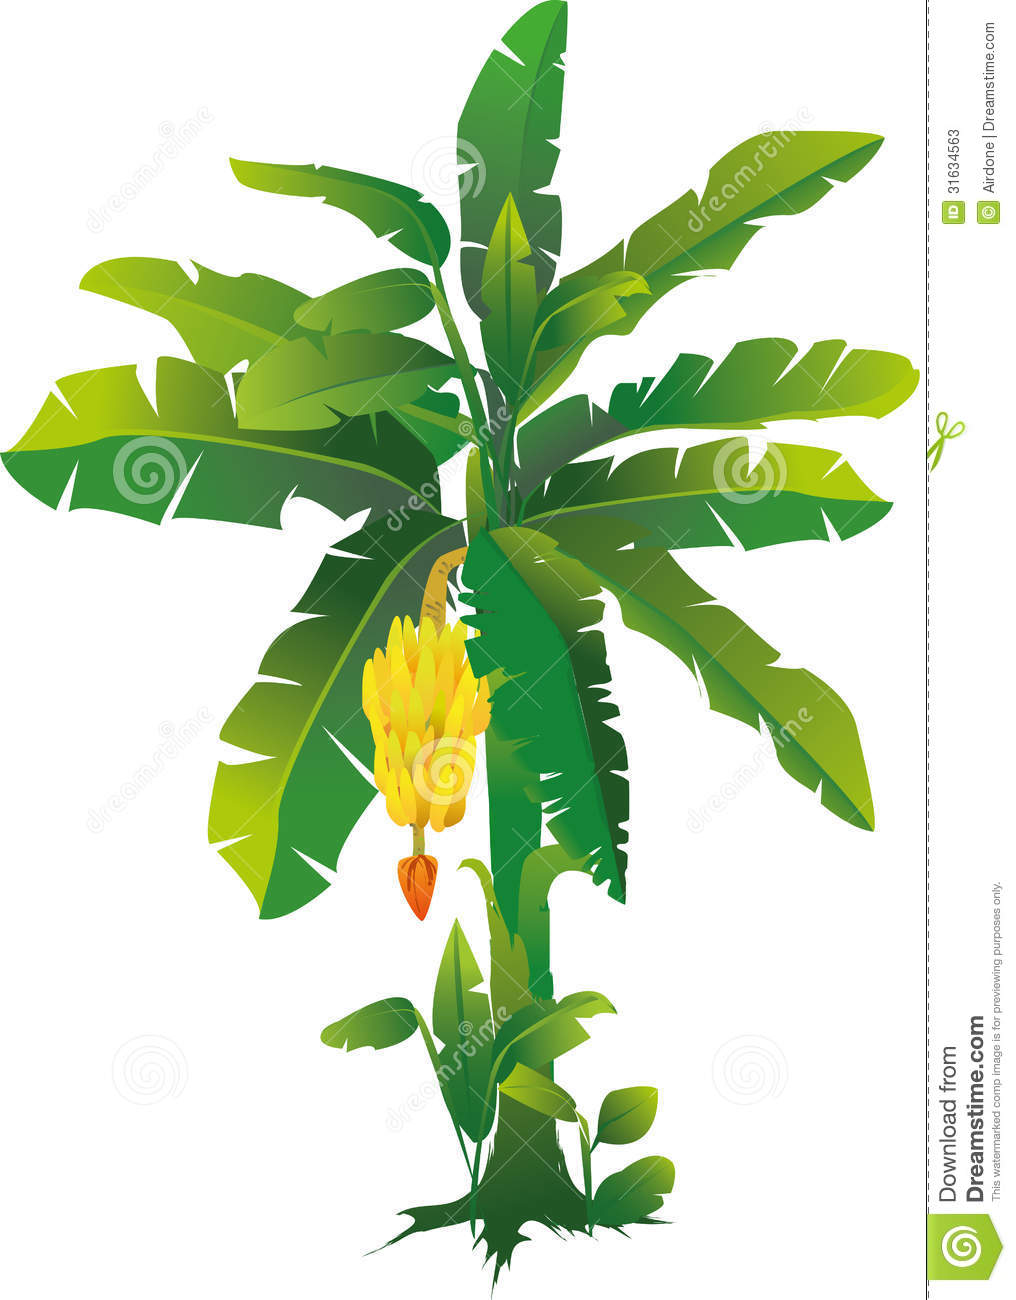 Banana Tree Stock Photos.